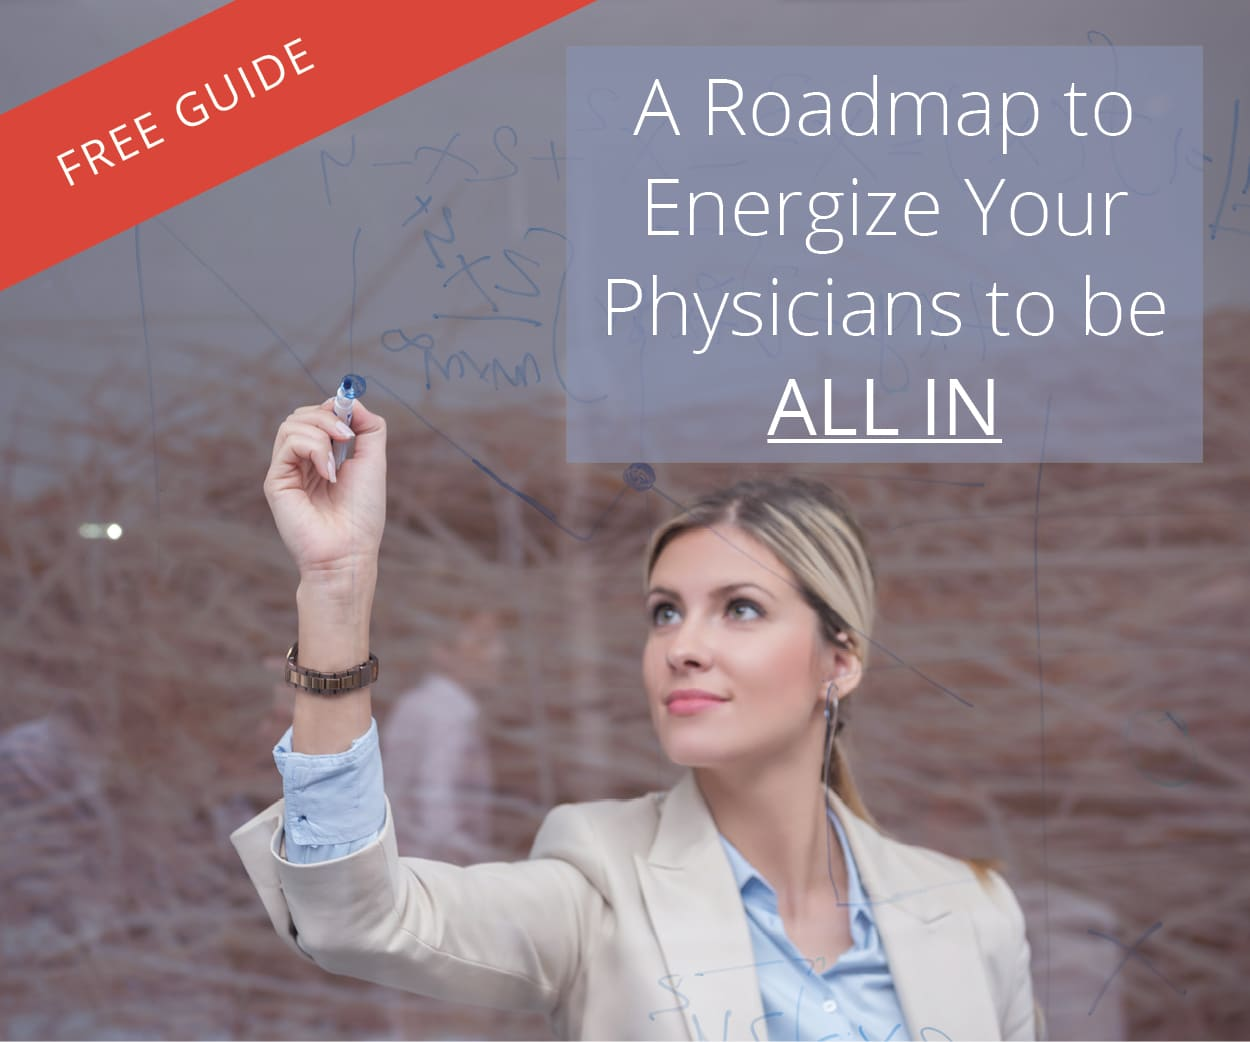 A Roadmap to Energize Your Physicians to be All In